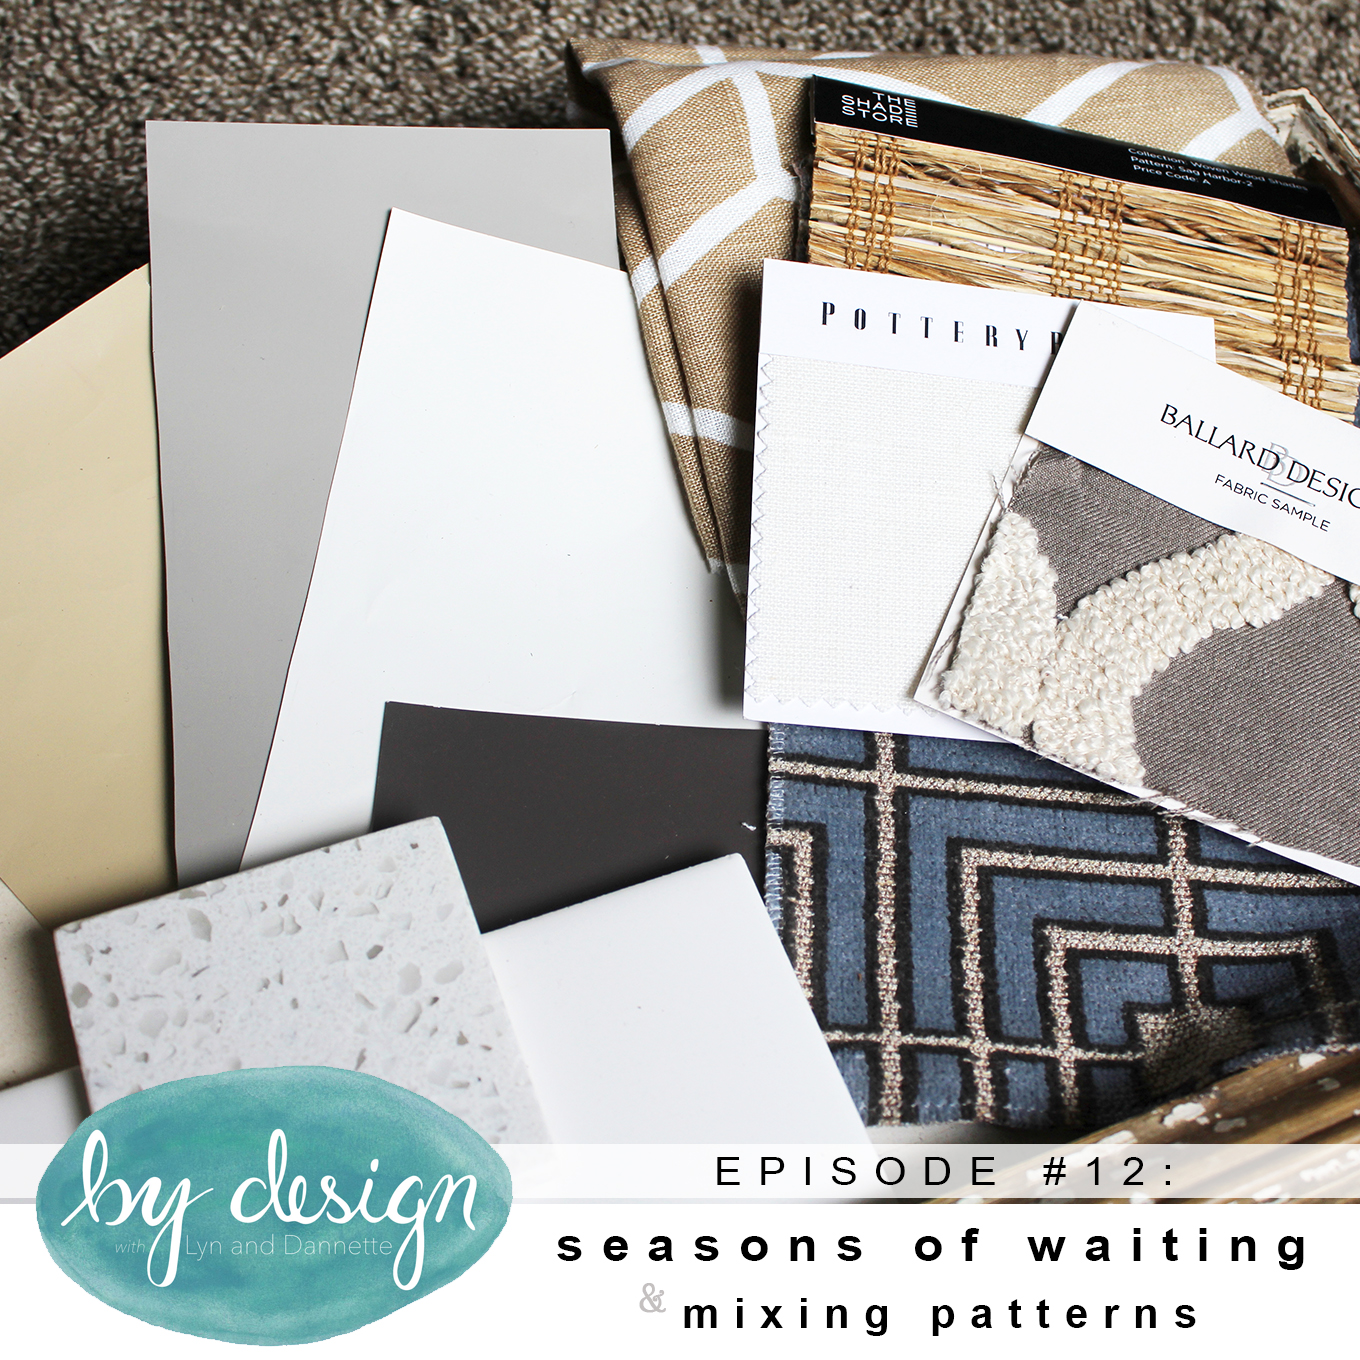 pillows by design by design episode 12 seasons of waiting mixing patterns